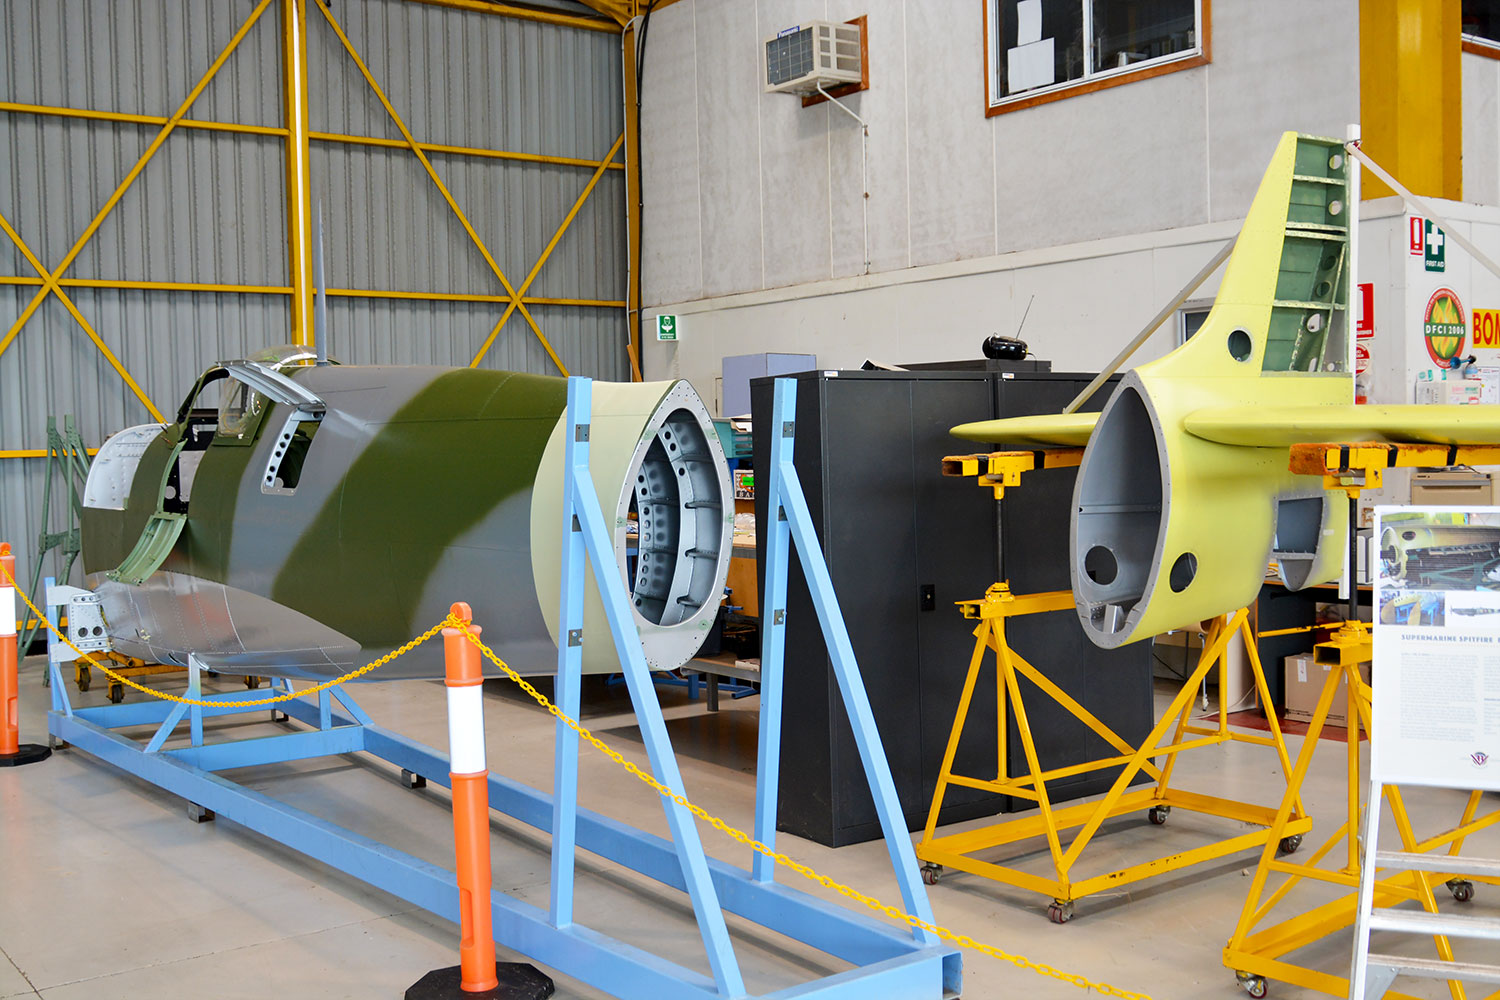 MH603 fuselage and empenage